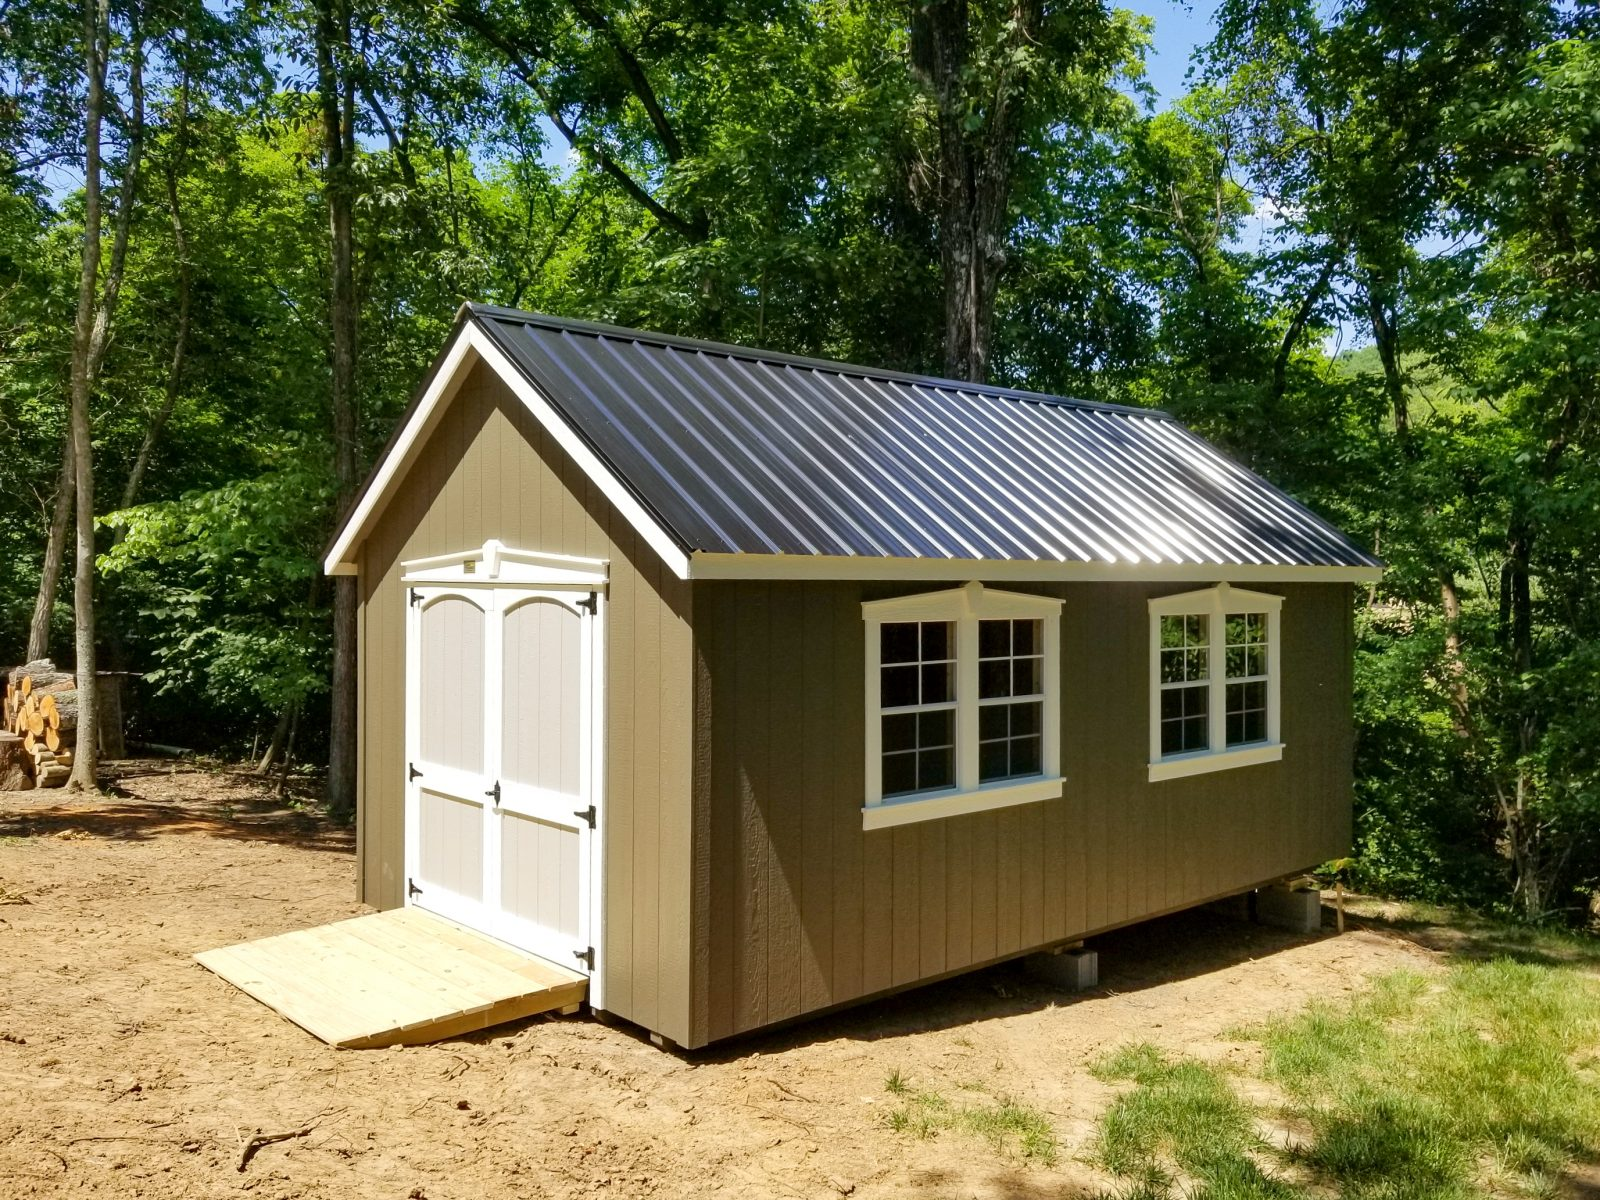 wood shed for sale near rolla missouri